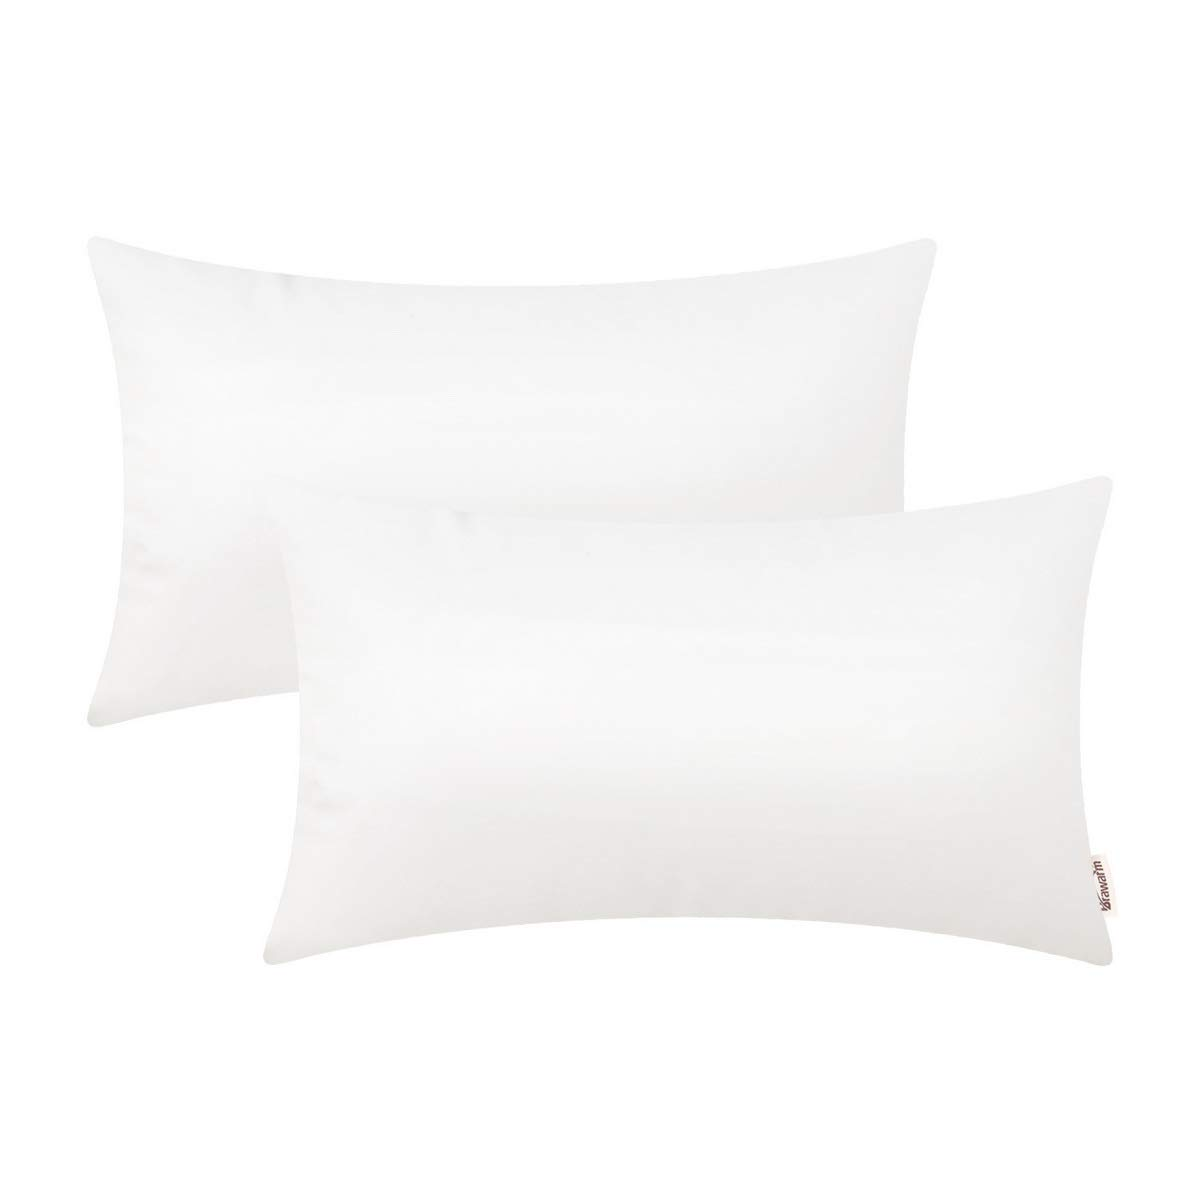 BRAWARM Pack of 2 Cozy Bolster Pillow Covers Cases for Couch Sofa Home Decoration Solid Dyed Soft Faux Leather Both Sides 12 X 20 Inches True White